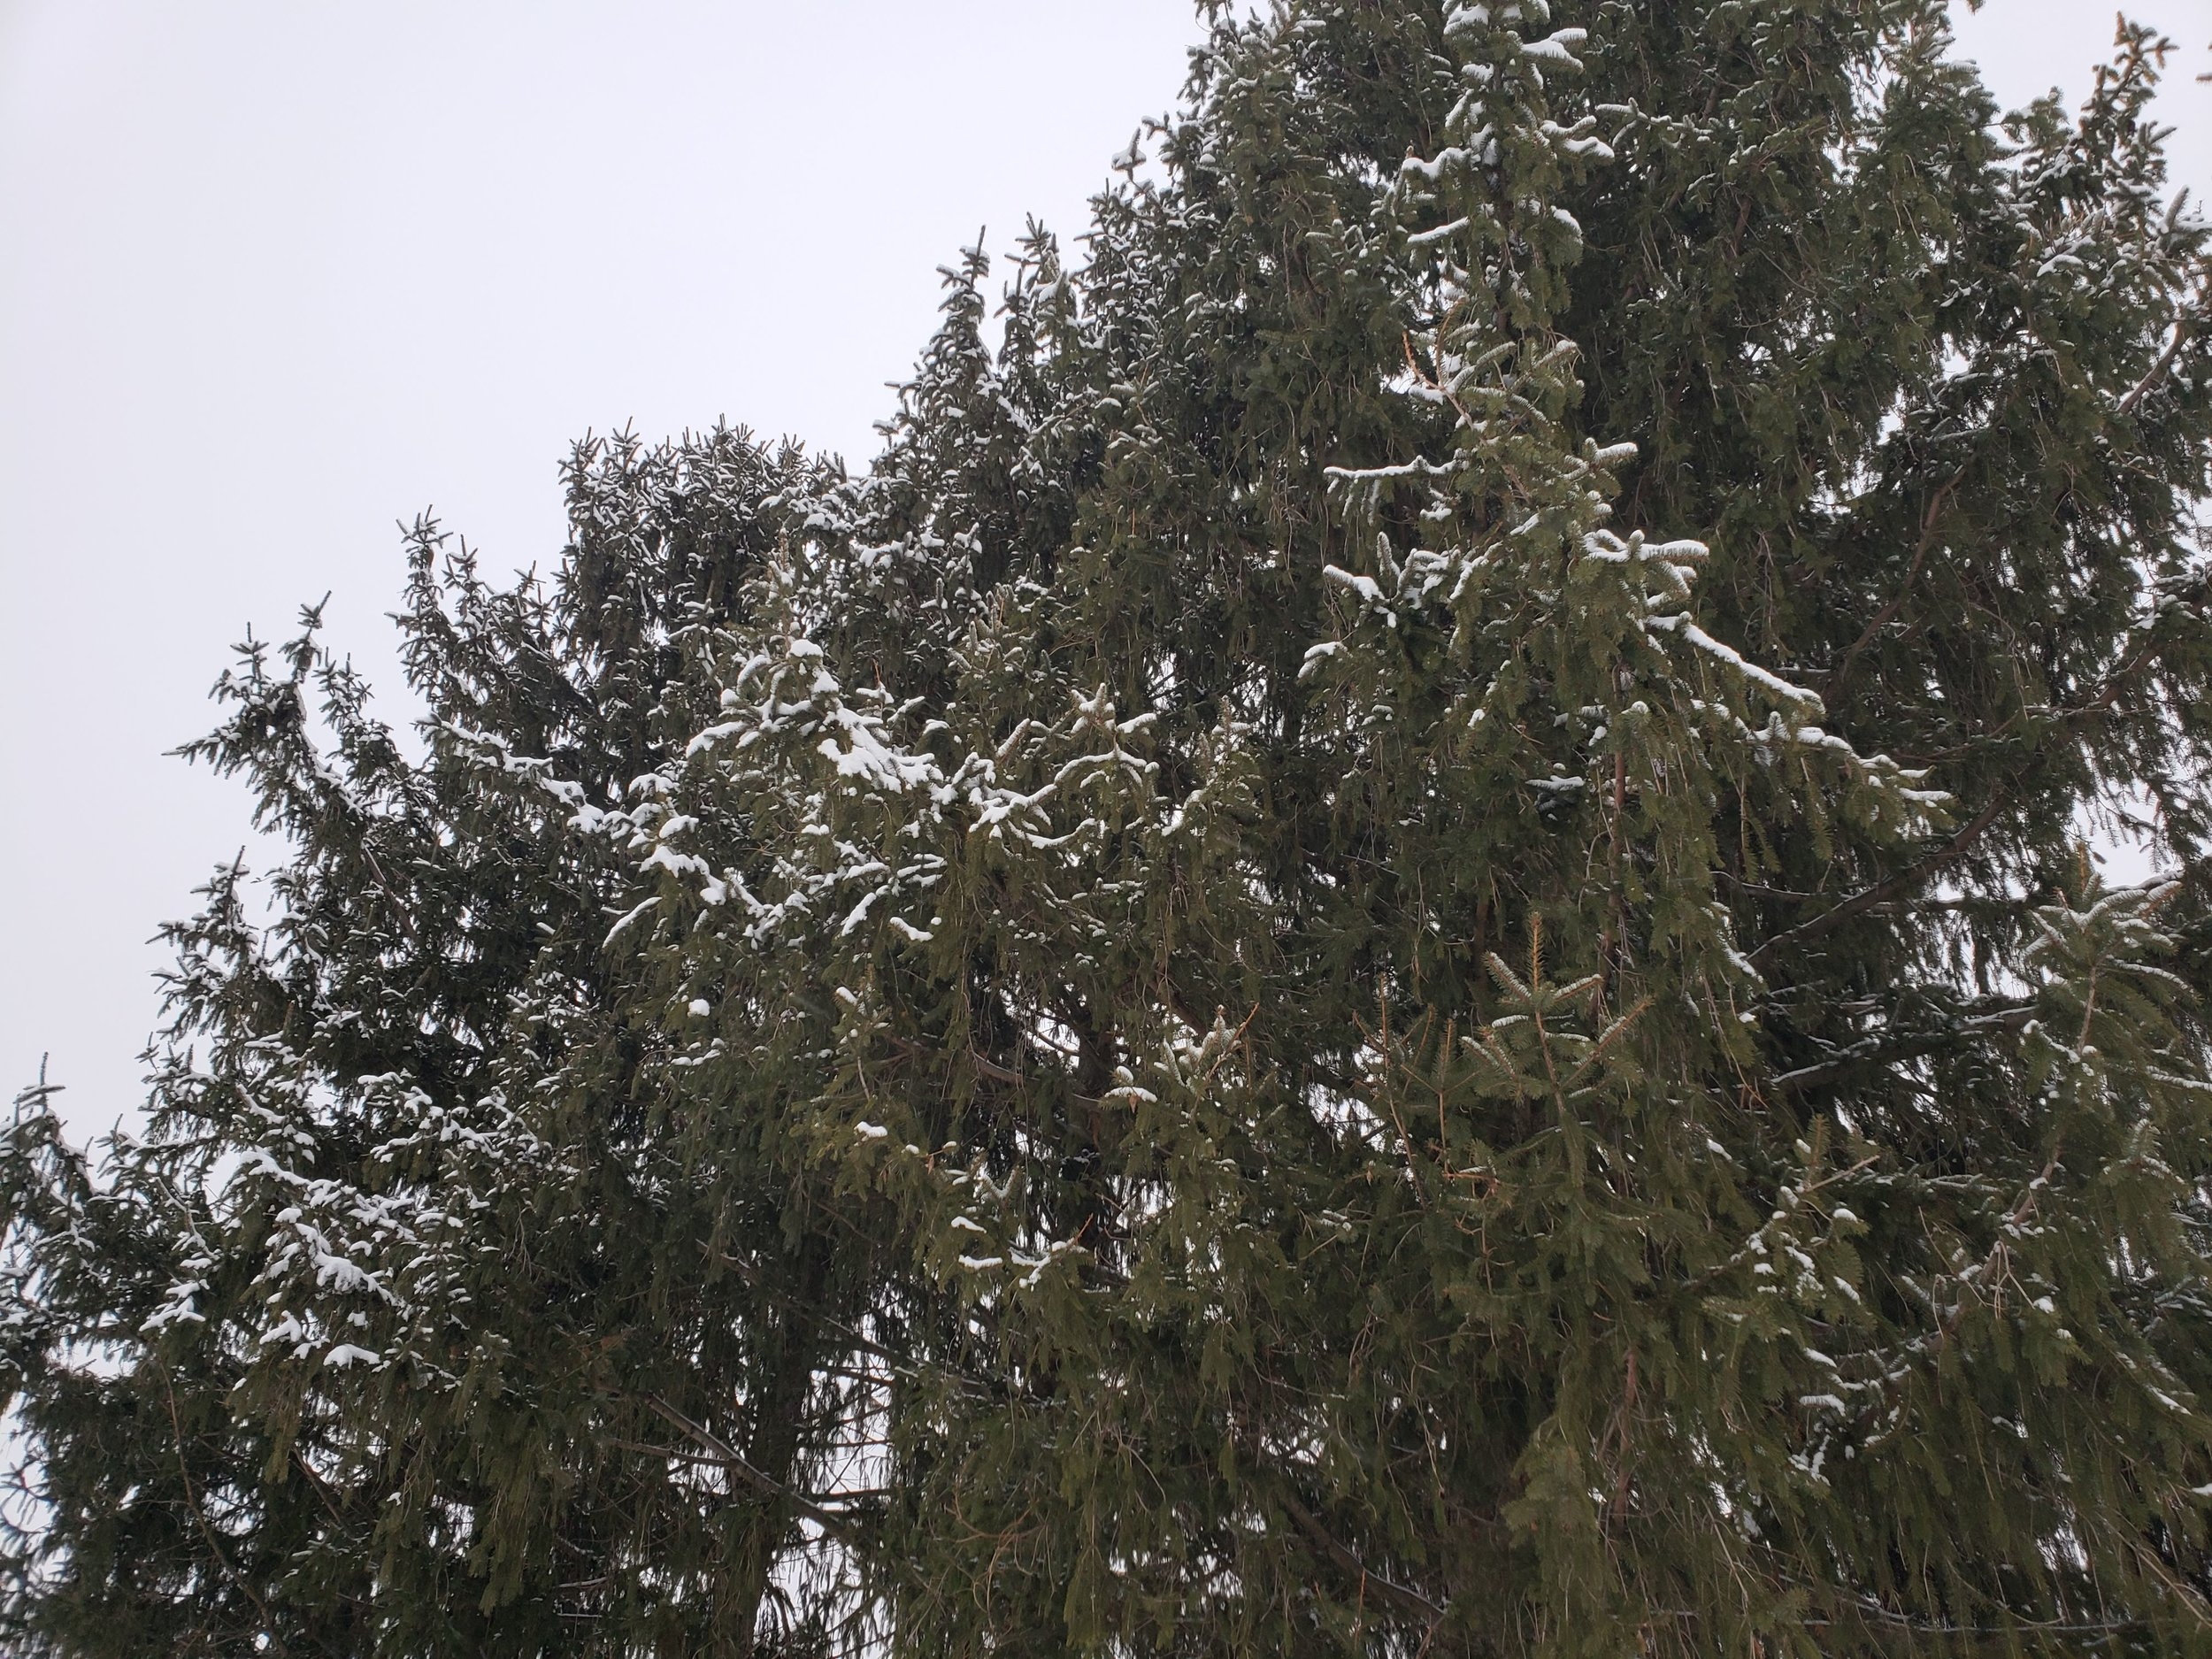 Pine trees in the snow. Future sunset garden?